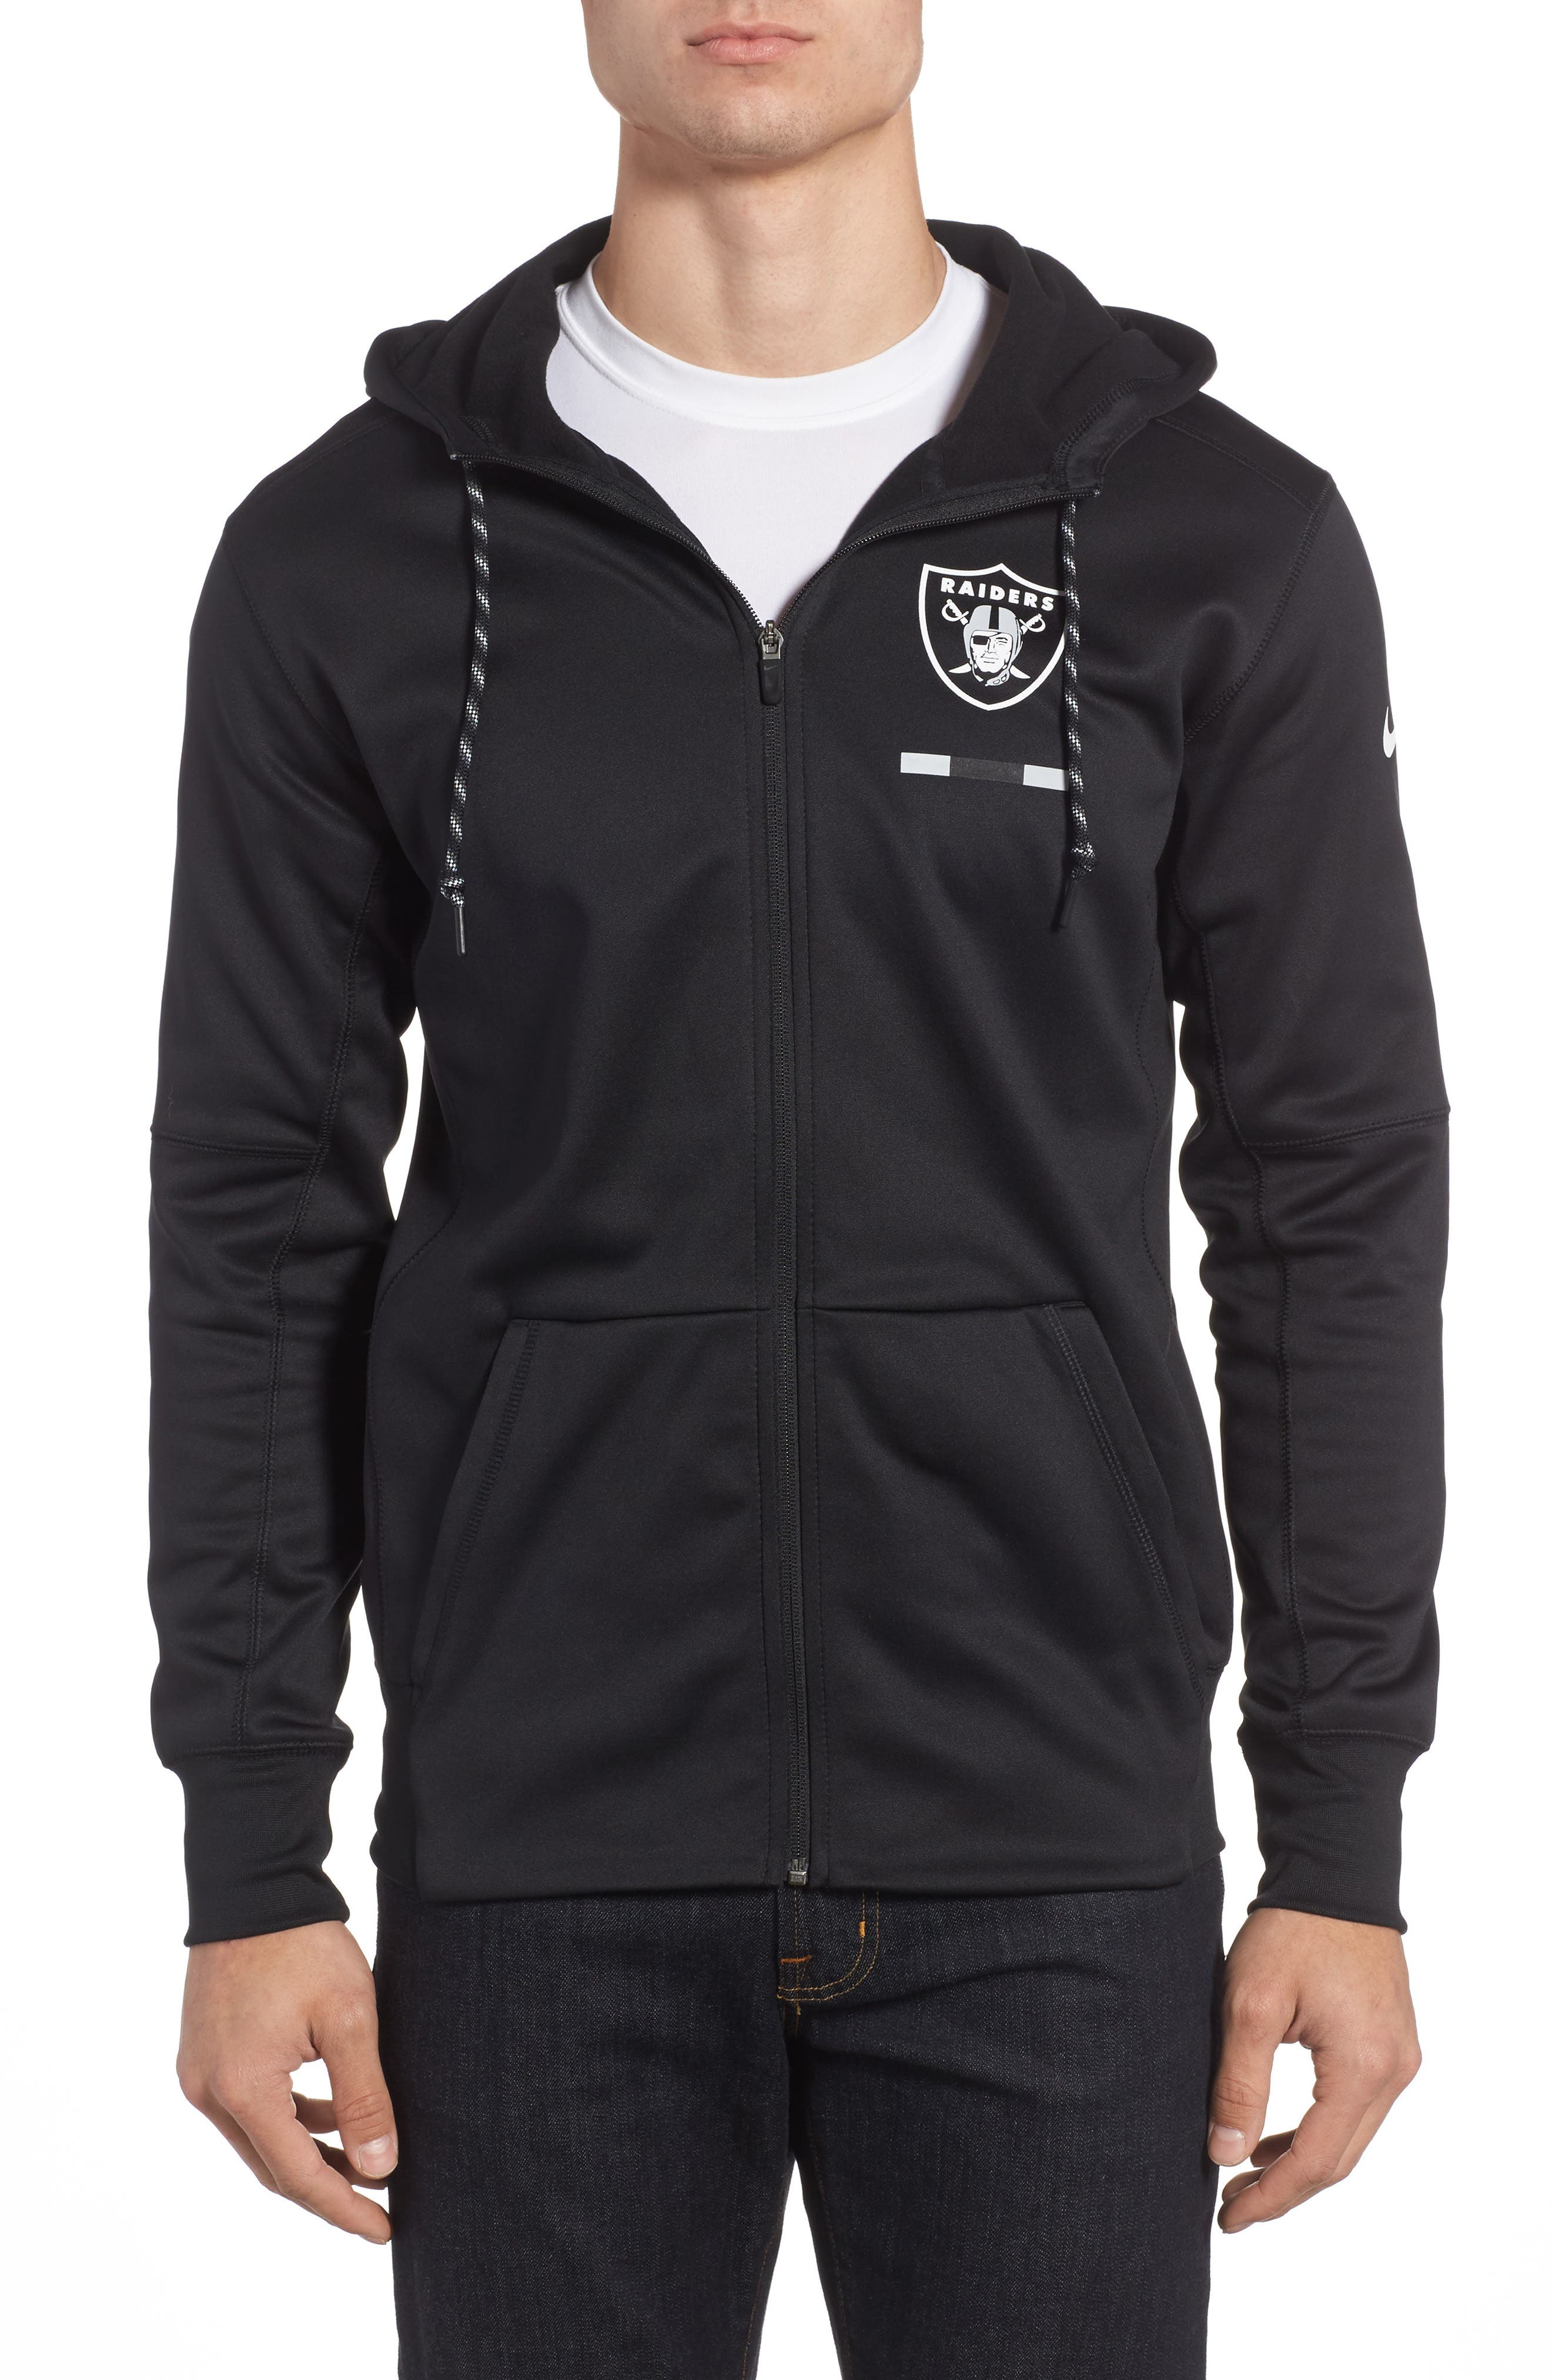 Therma-FIT NFL Graphic Zip Hoodie,                             Main thumbnail 1, color,                             010